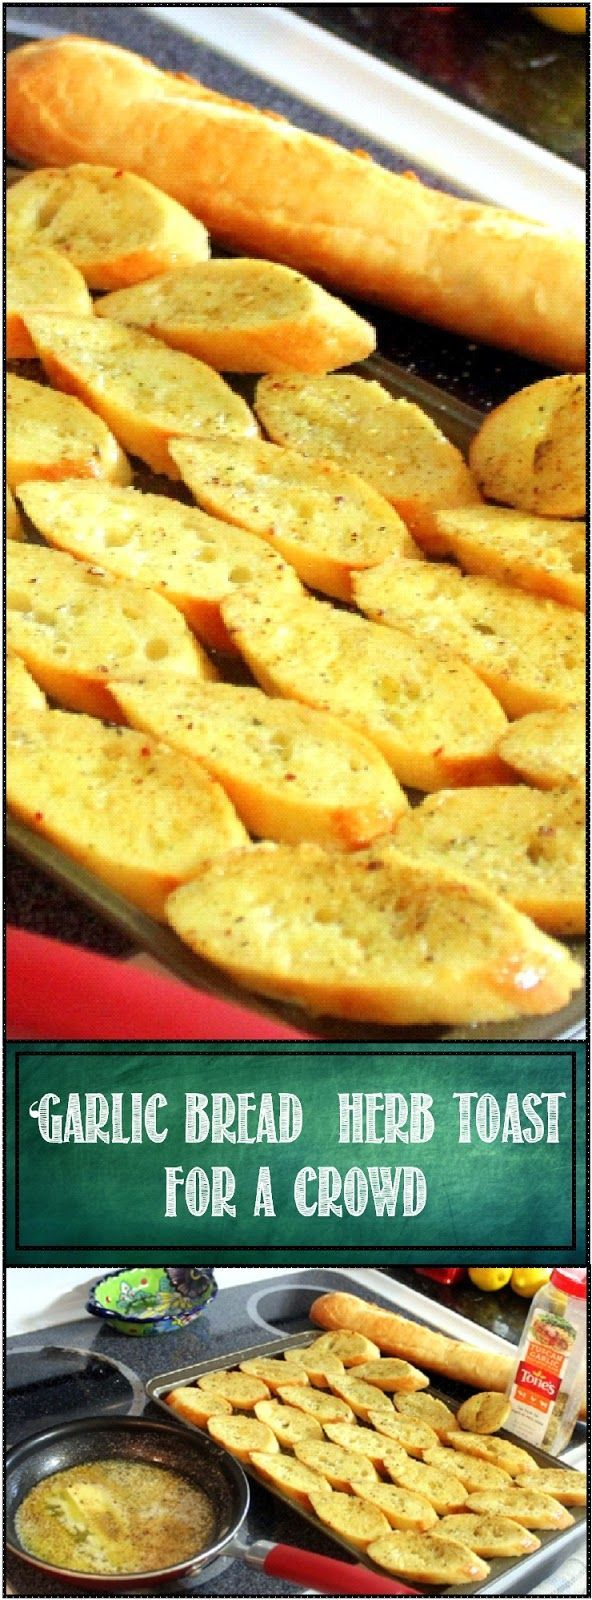 Garlic Toast... Cheap and Easy for a CROWD!  Sure sounds simple (AND IT IS), but this DIY is designed for when you need to make a LOT for a hungry crowd.  Cost effective, EASY and QUICK.  Turn a dollar and a quarter French Baguette into 20-25 slices of garlic-y Herbal Italian goodness!